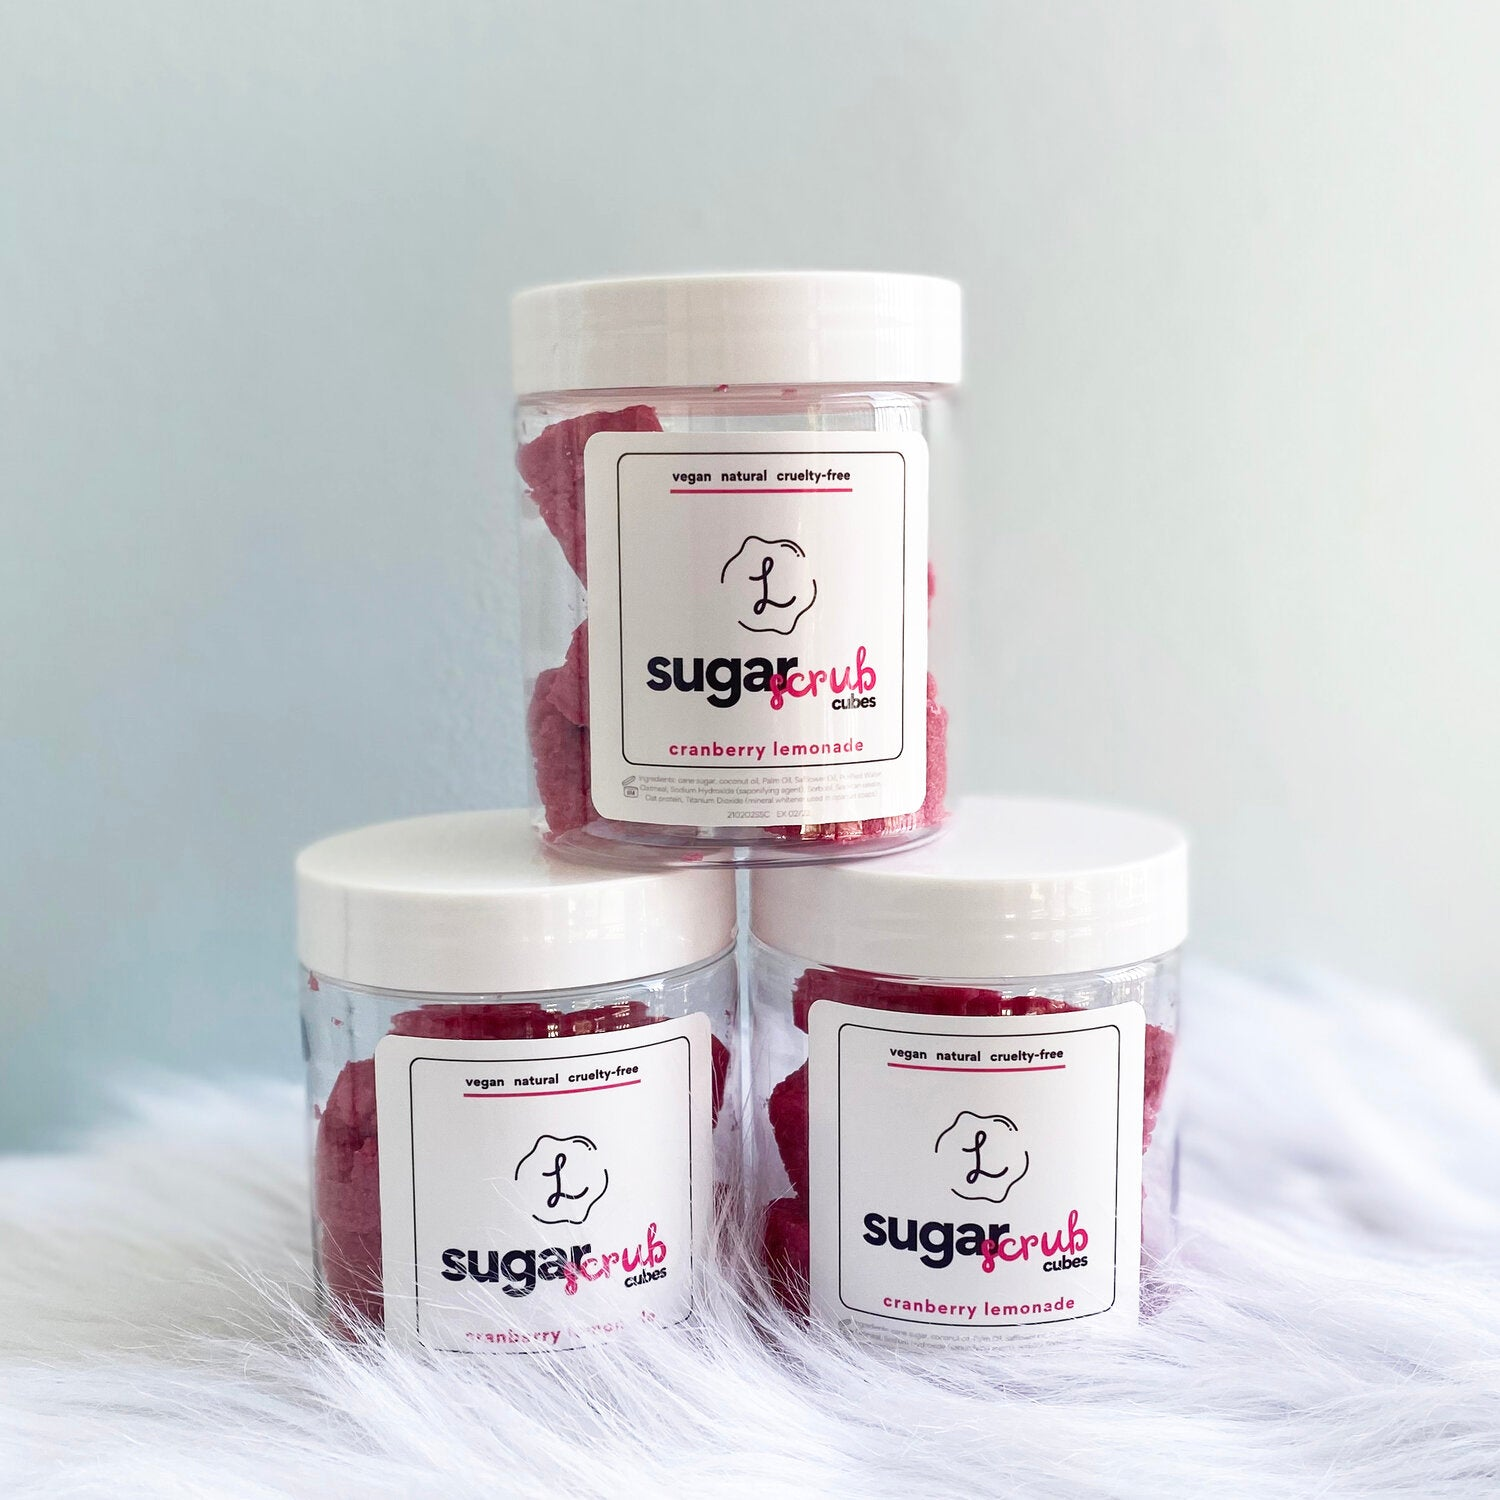 Cranberry Lemonade Sugar Scrub